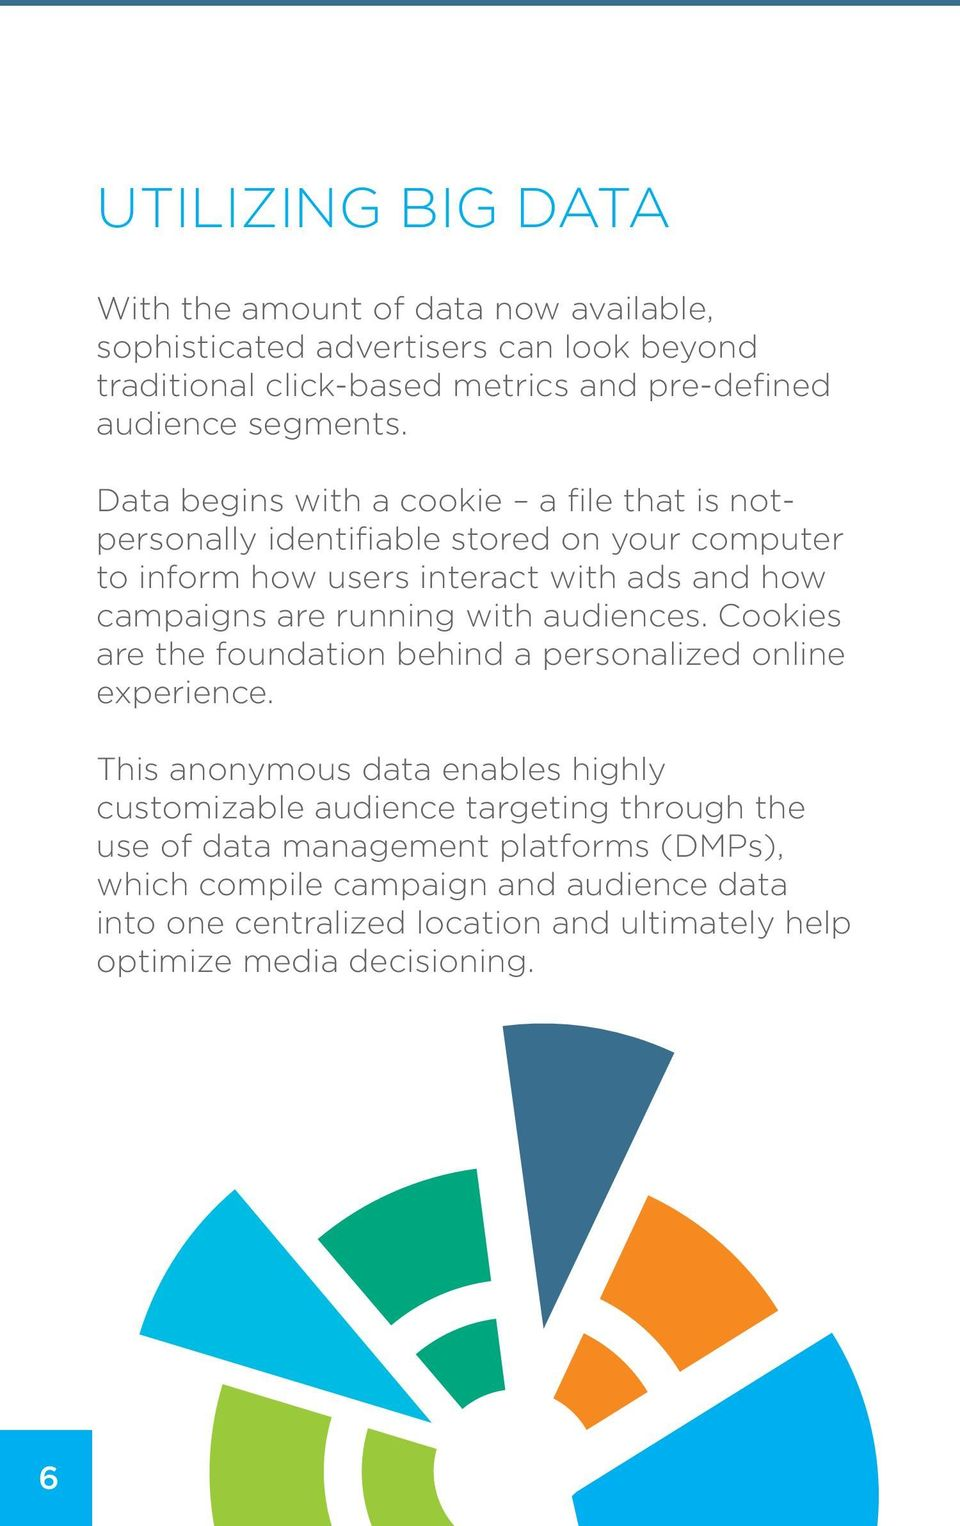 Data begins with a cookie a file that is notpersonally identifiable stored on your computer to inform how users interact with ads and how campaigns are running